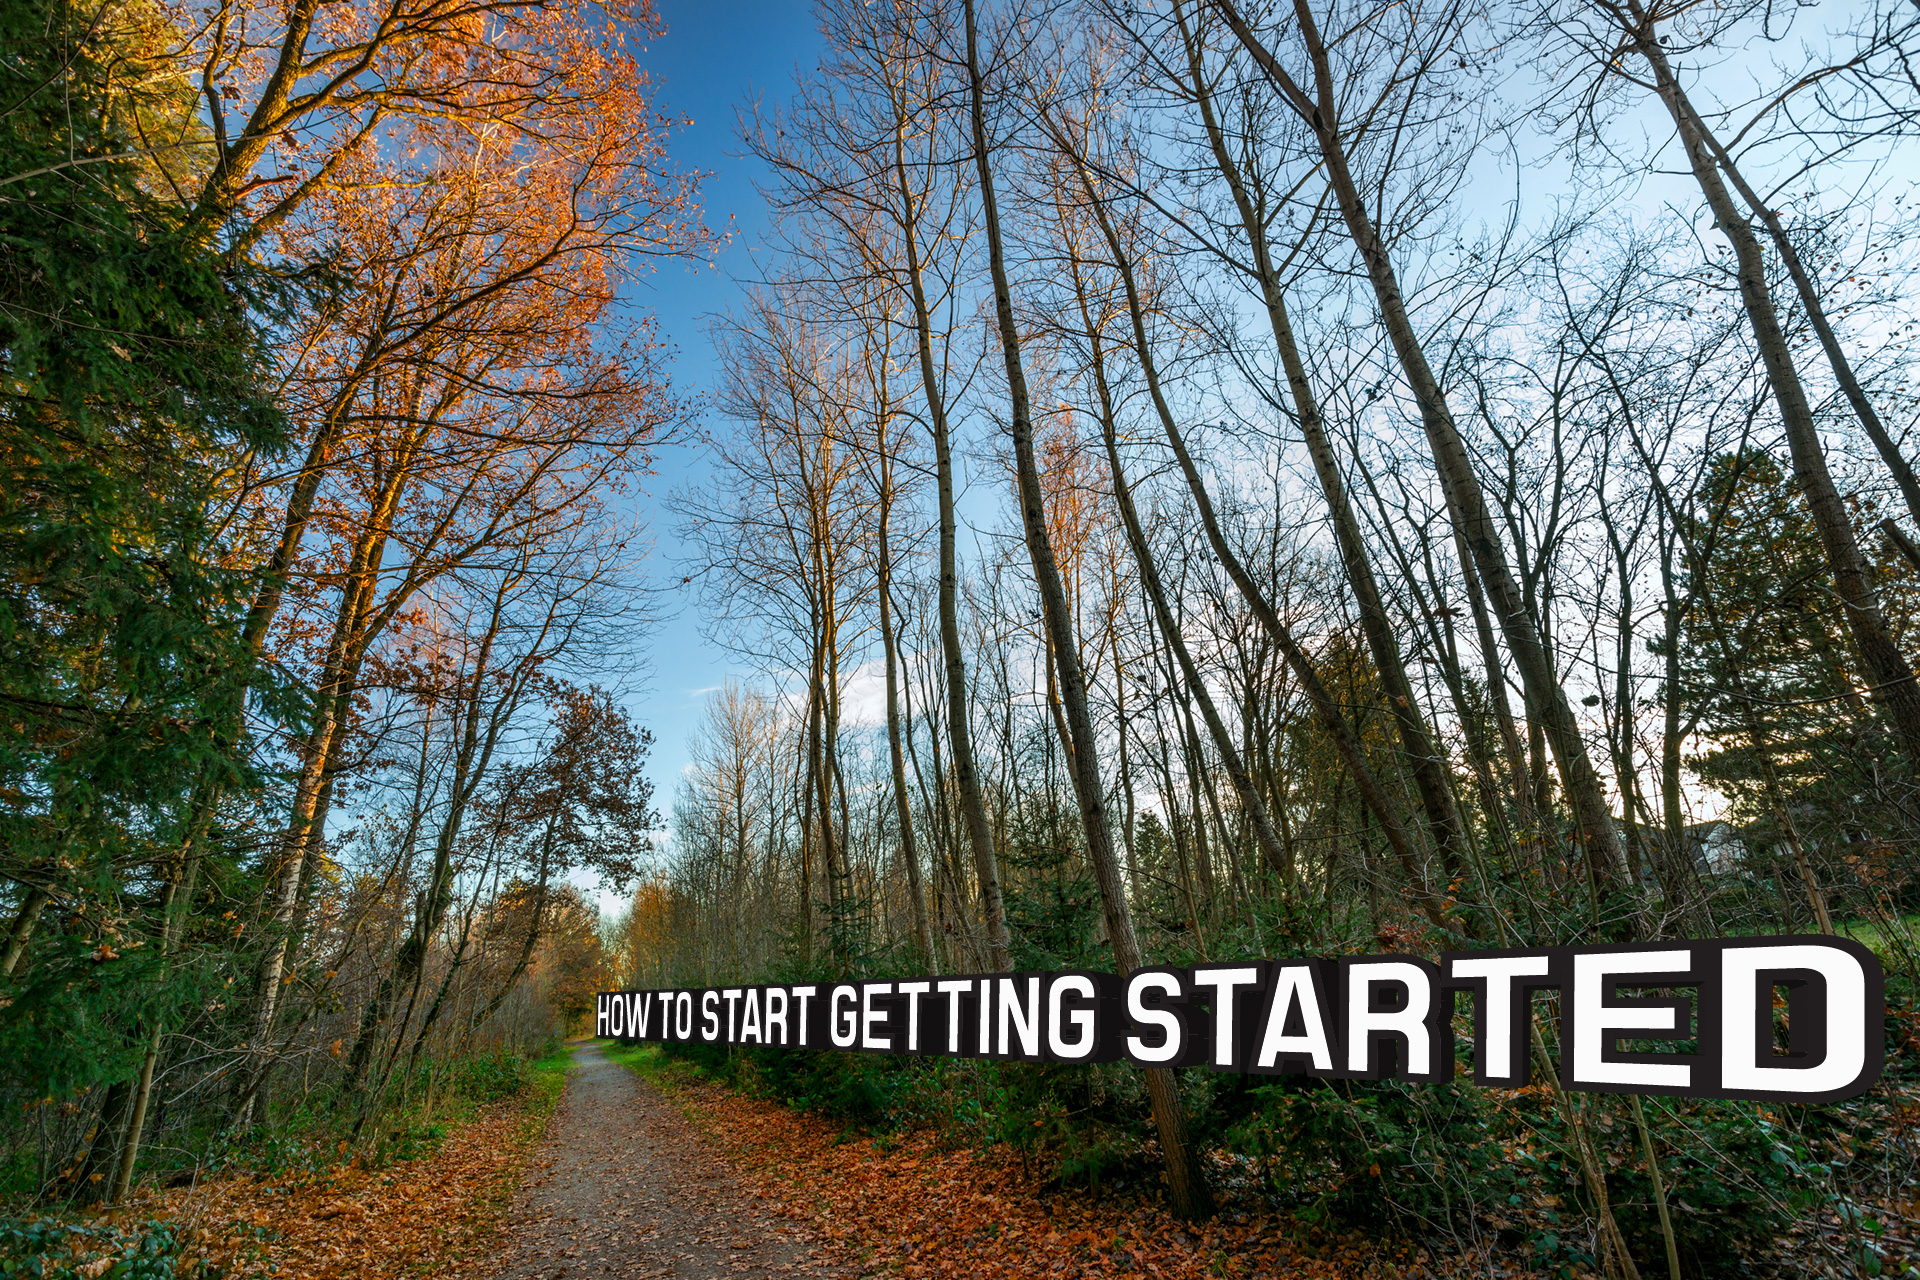 How to Start Getting Started